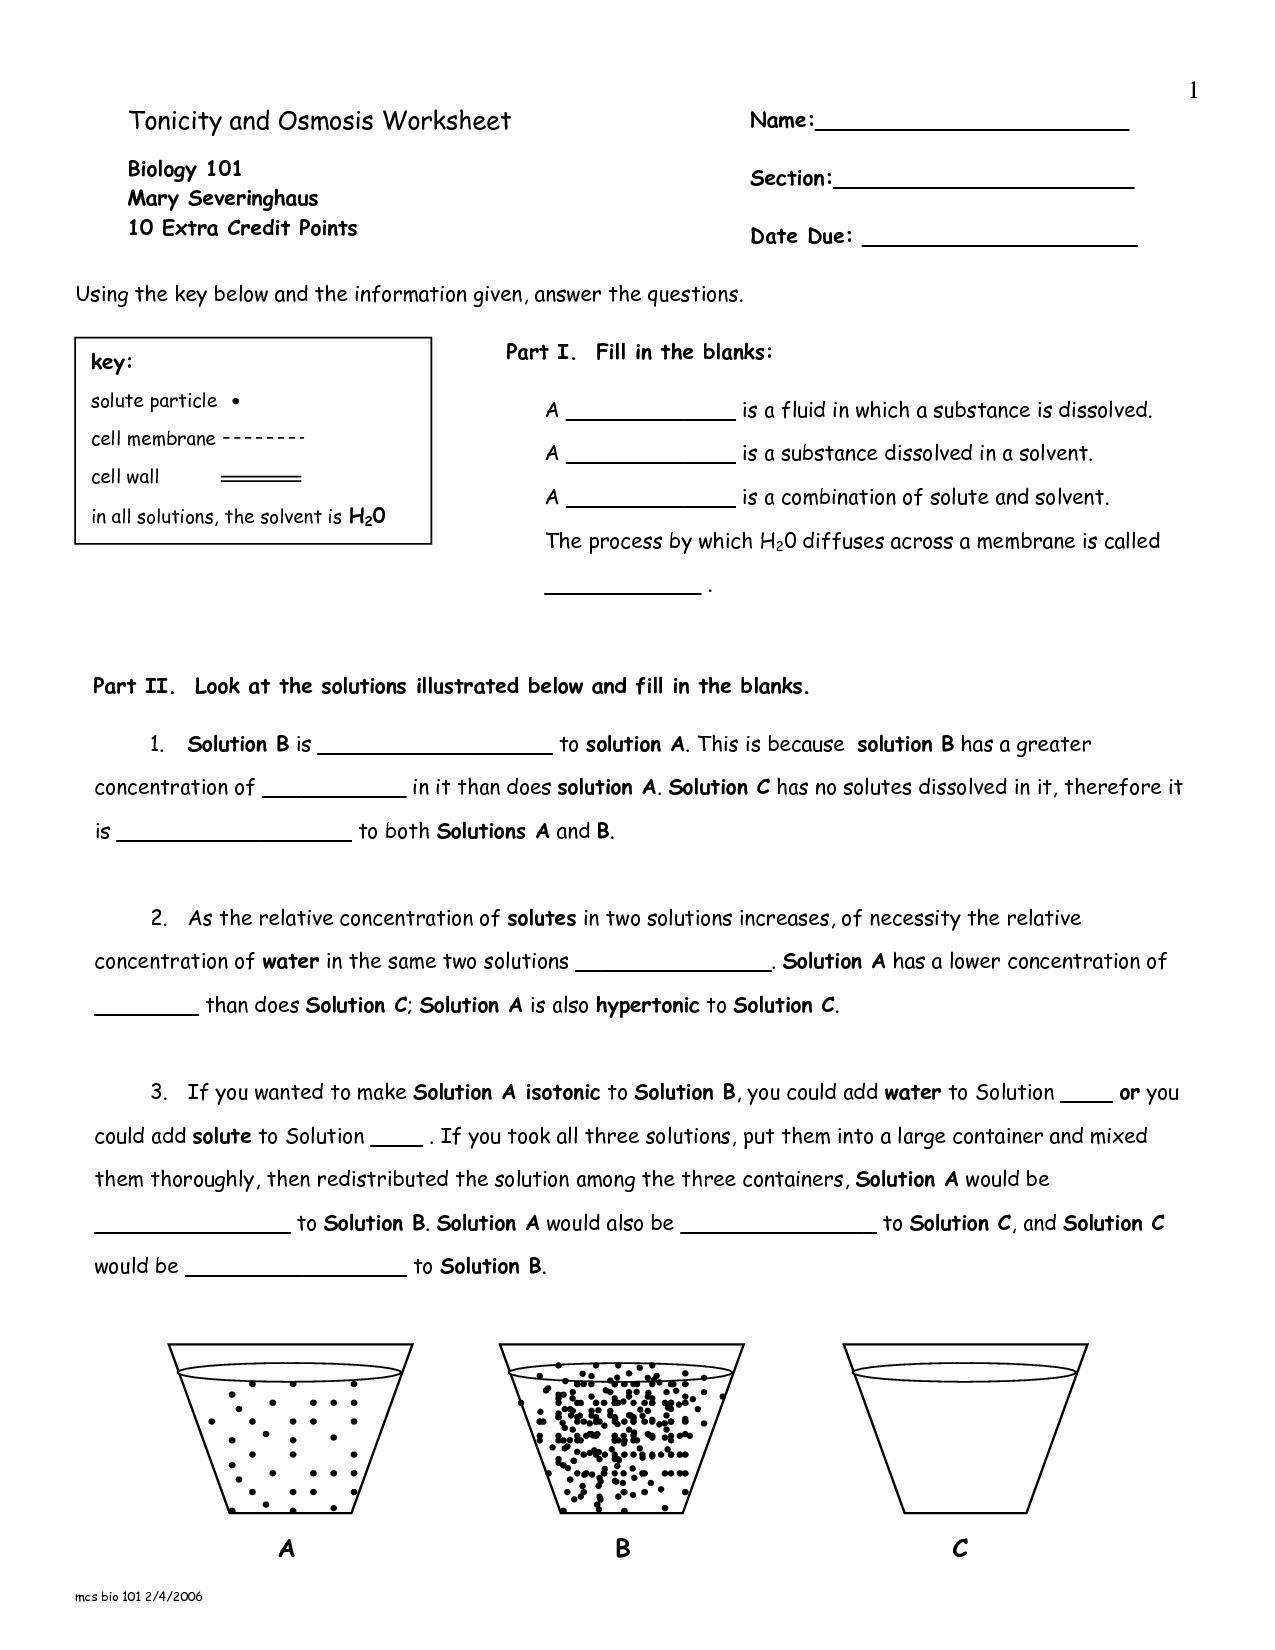 Of Osmosis Worksheet Answers Osmosis And Tonicity Worksheet Answer